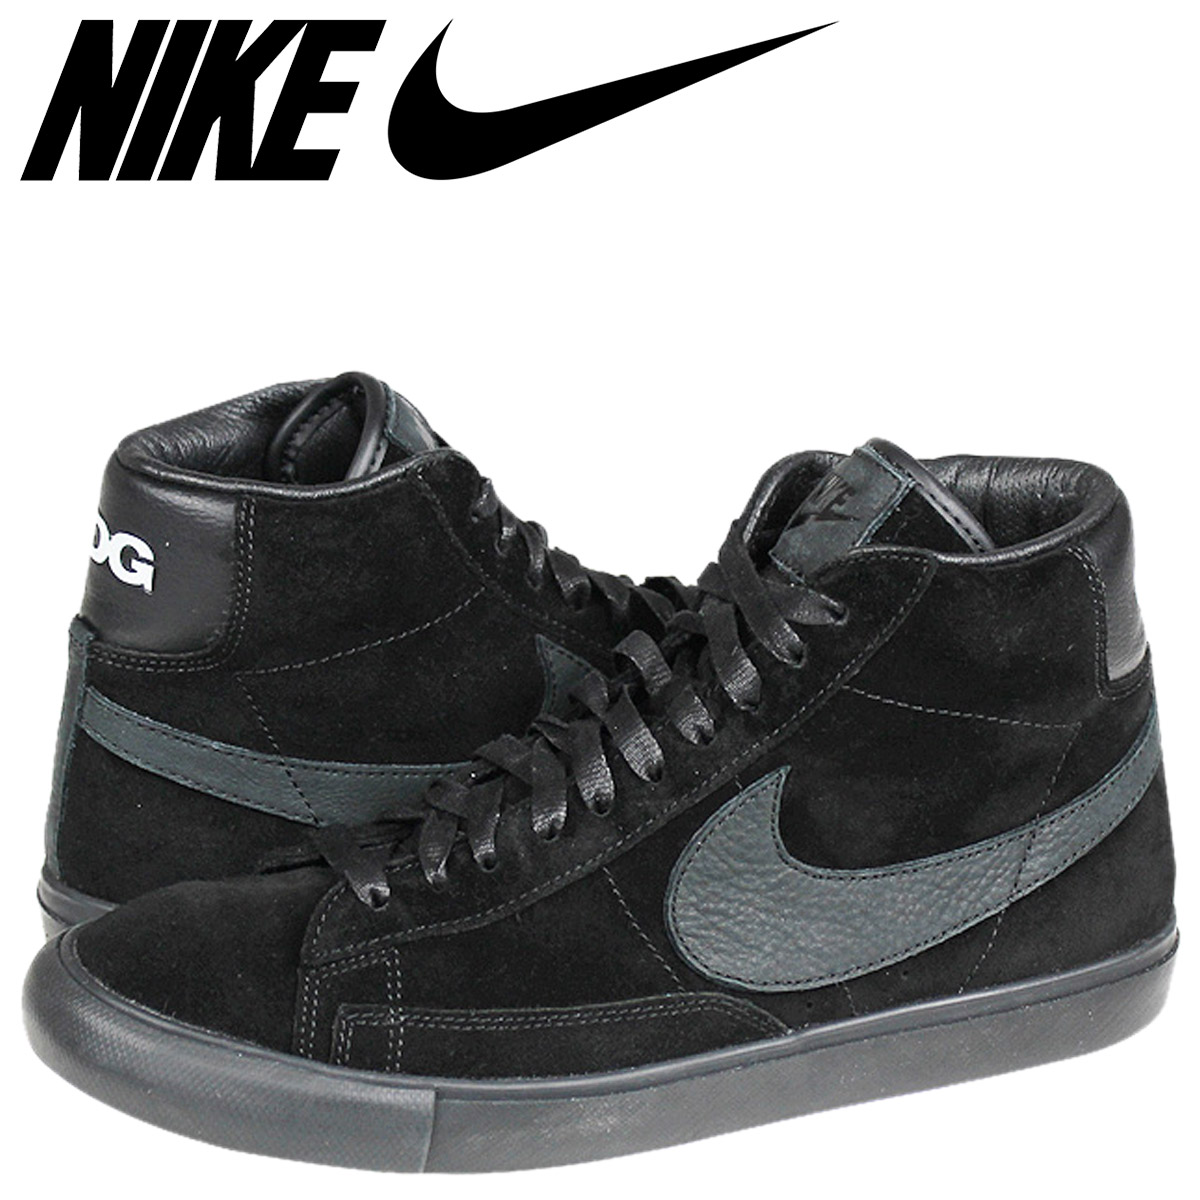 buy popular ea631 c7734 NIKE Nike blazer sneakers BLAZER HI SP BLACK COMME des GARCONS blazer high  black black コムデギャルソンブラザーコラボ CDG 704,571-001 black black men